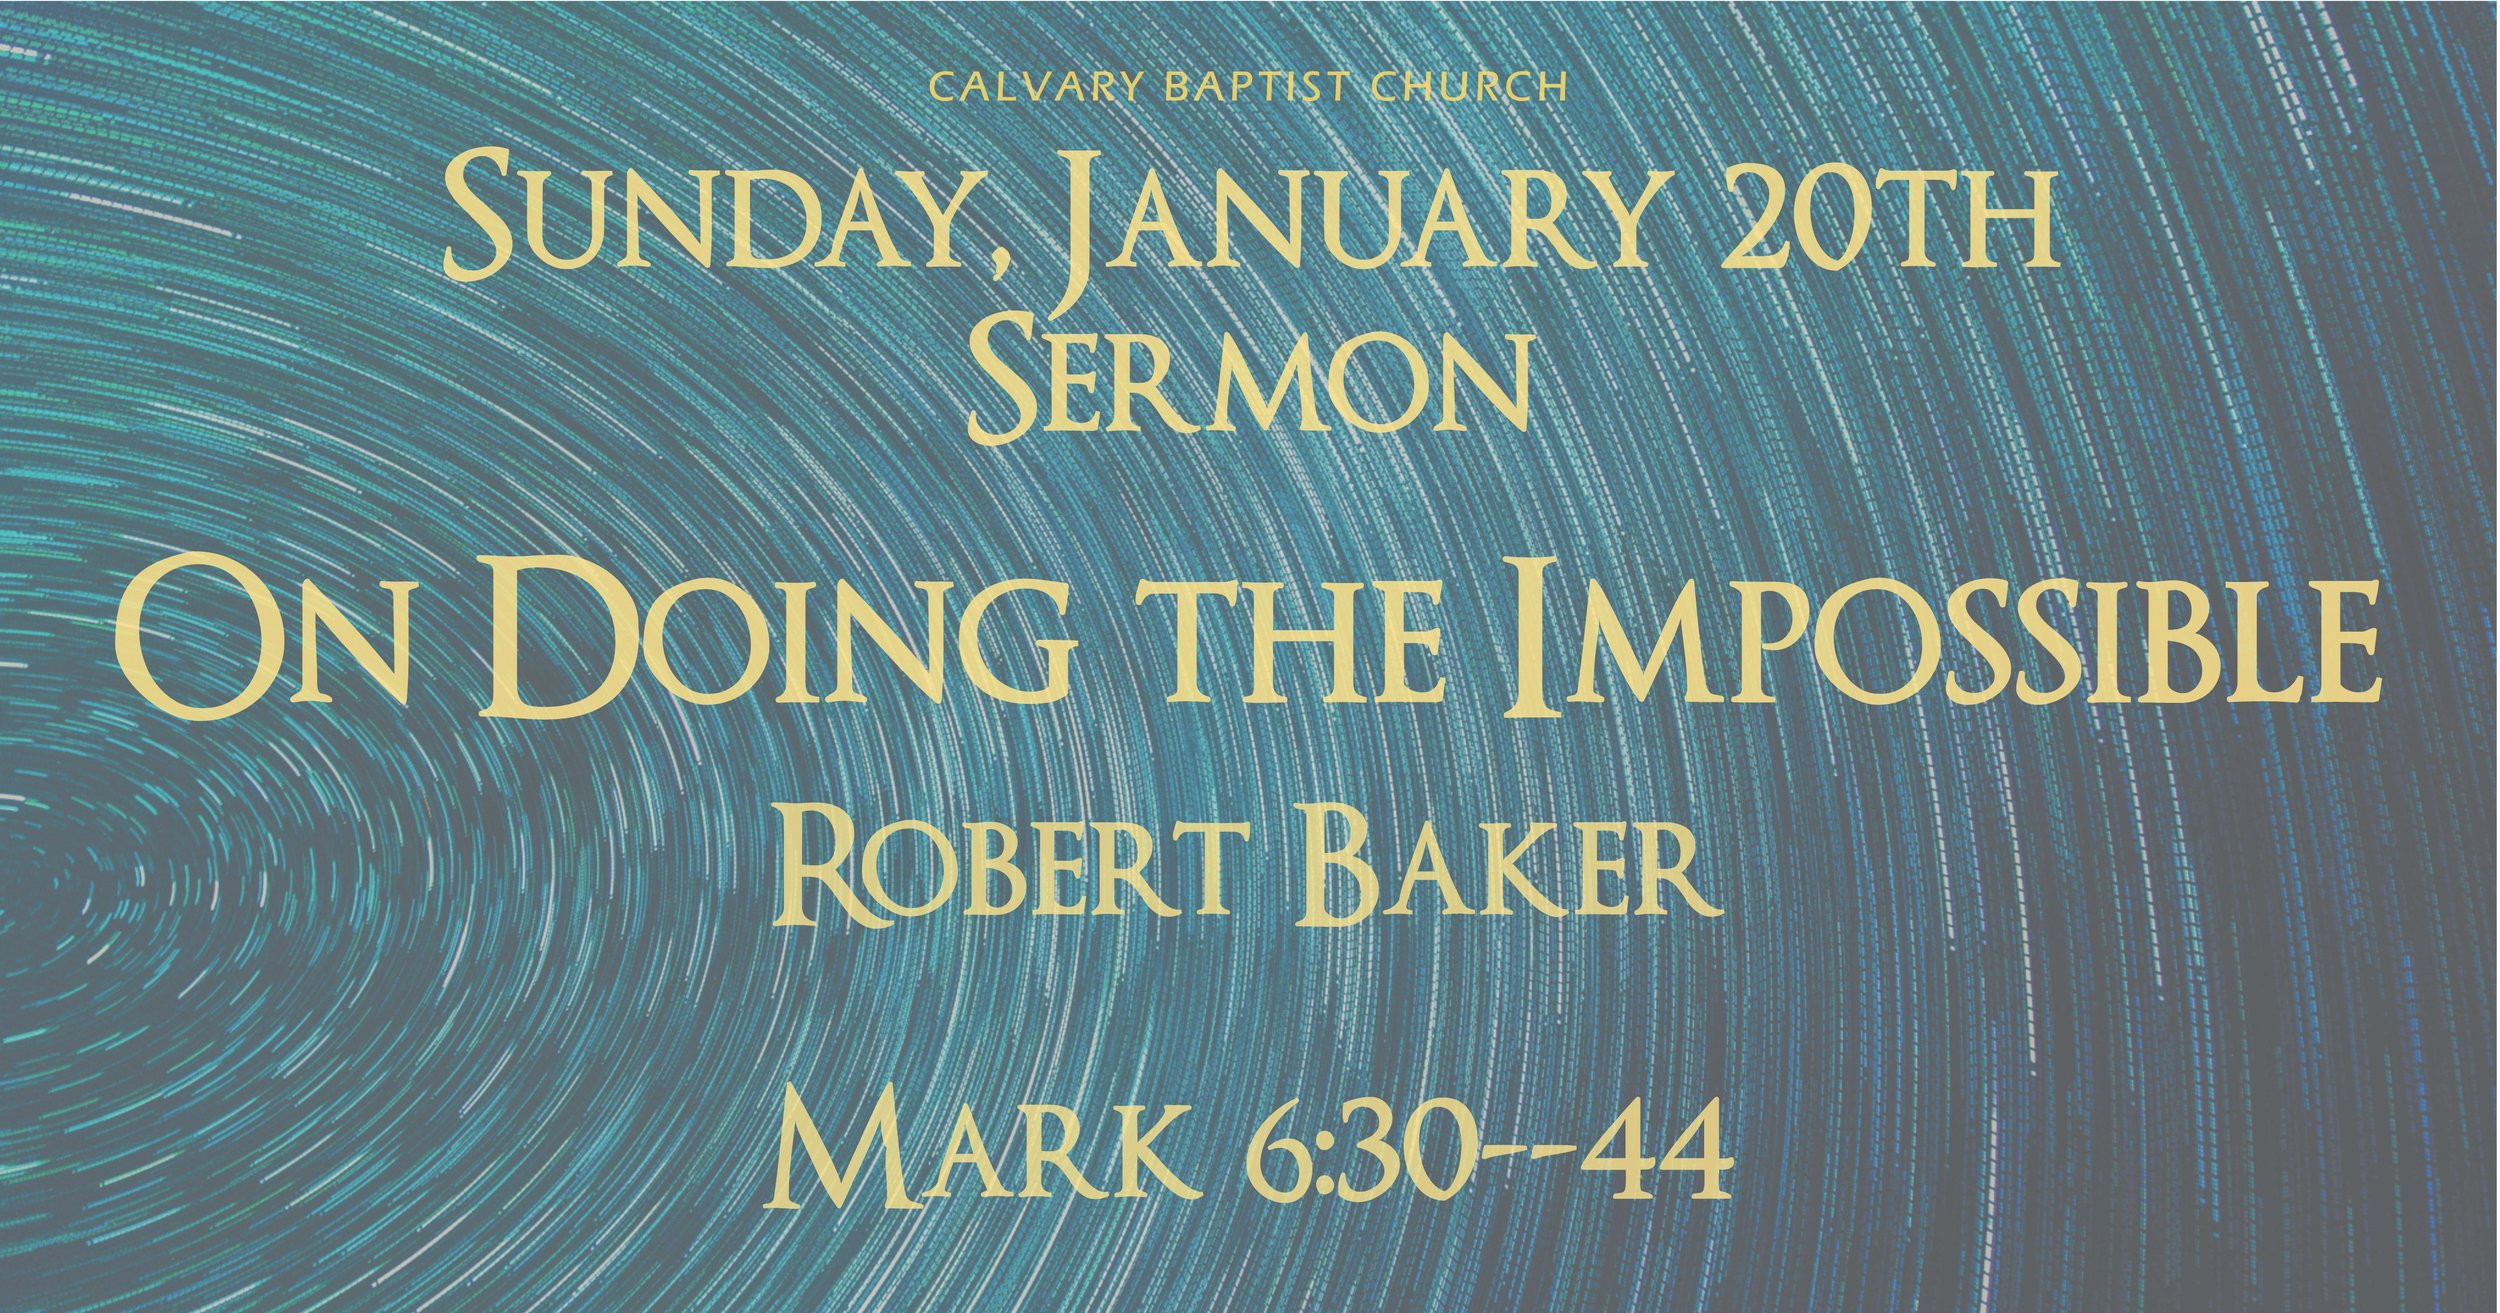 Jan 20 Sermon facebook  010419.jpg